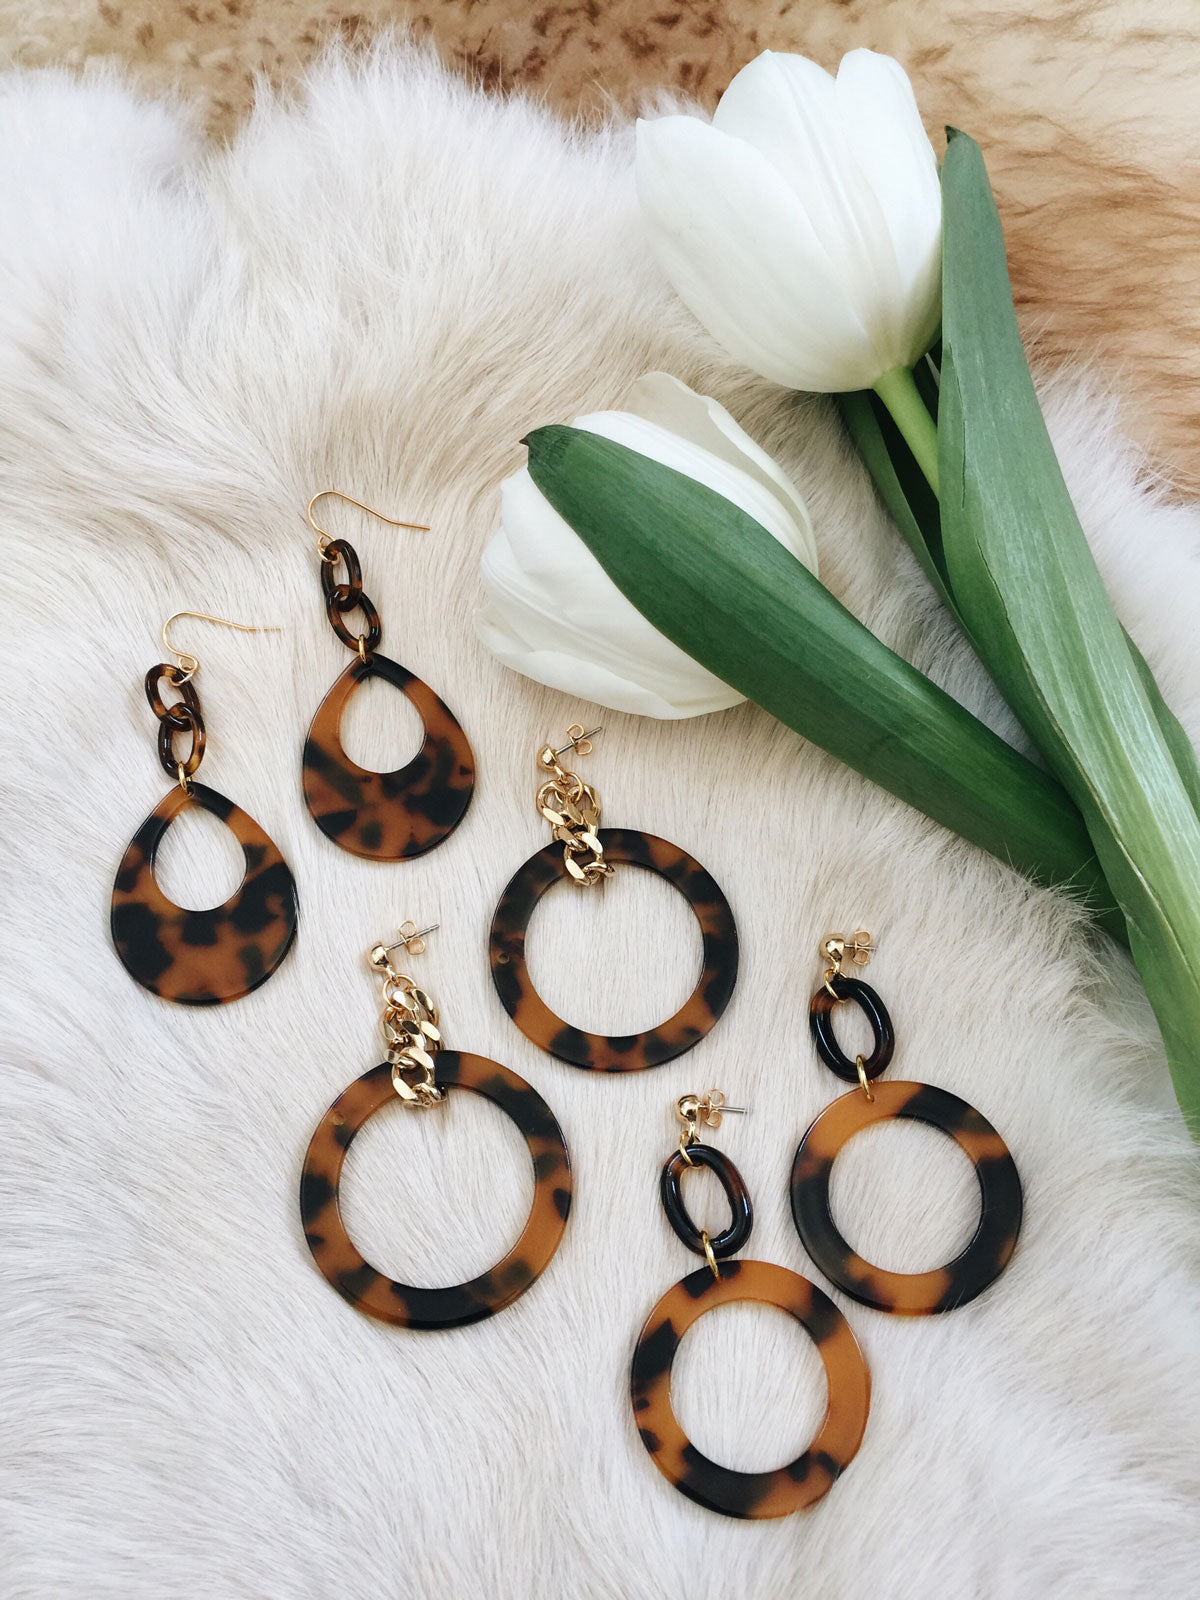 blonde earrings grande tortoise hoops machete in sale shop garmentory le ash